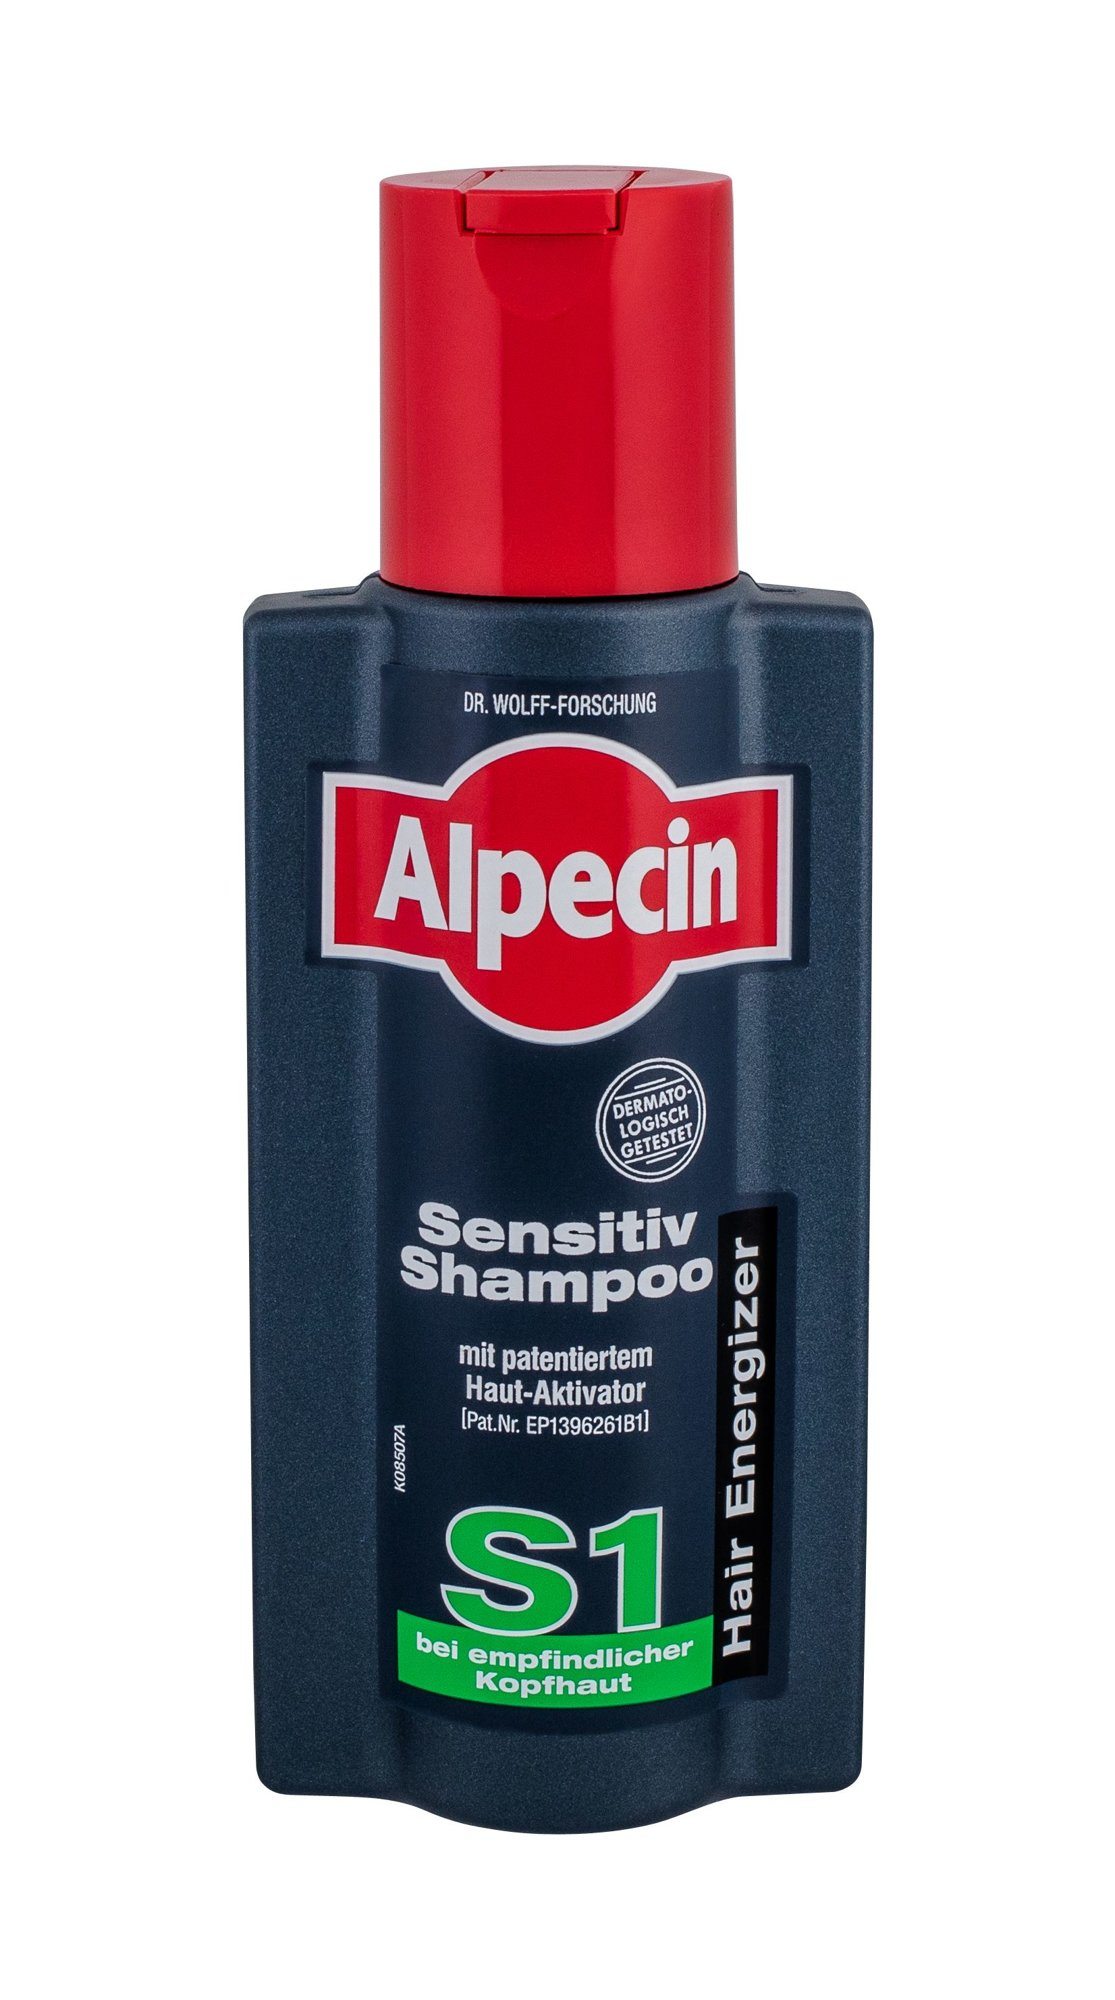 Alpecin Sensitive Shampoo S1 Cosmetic 250ml